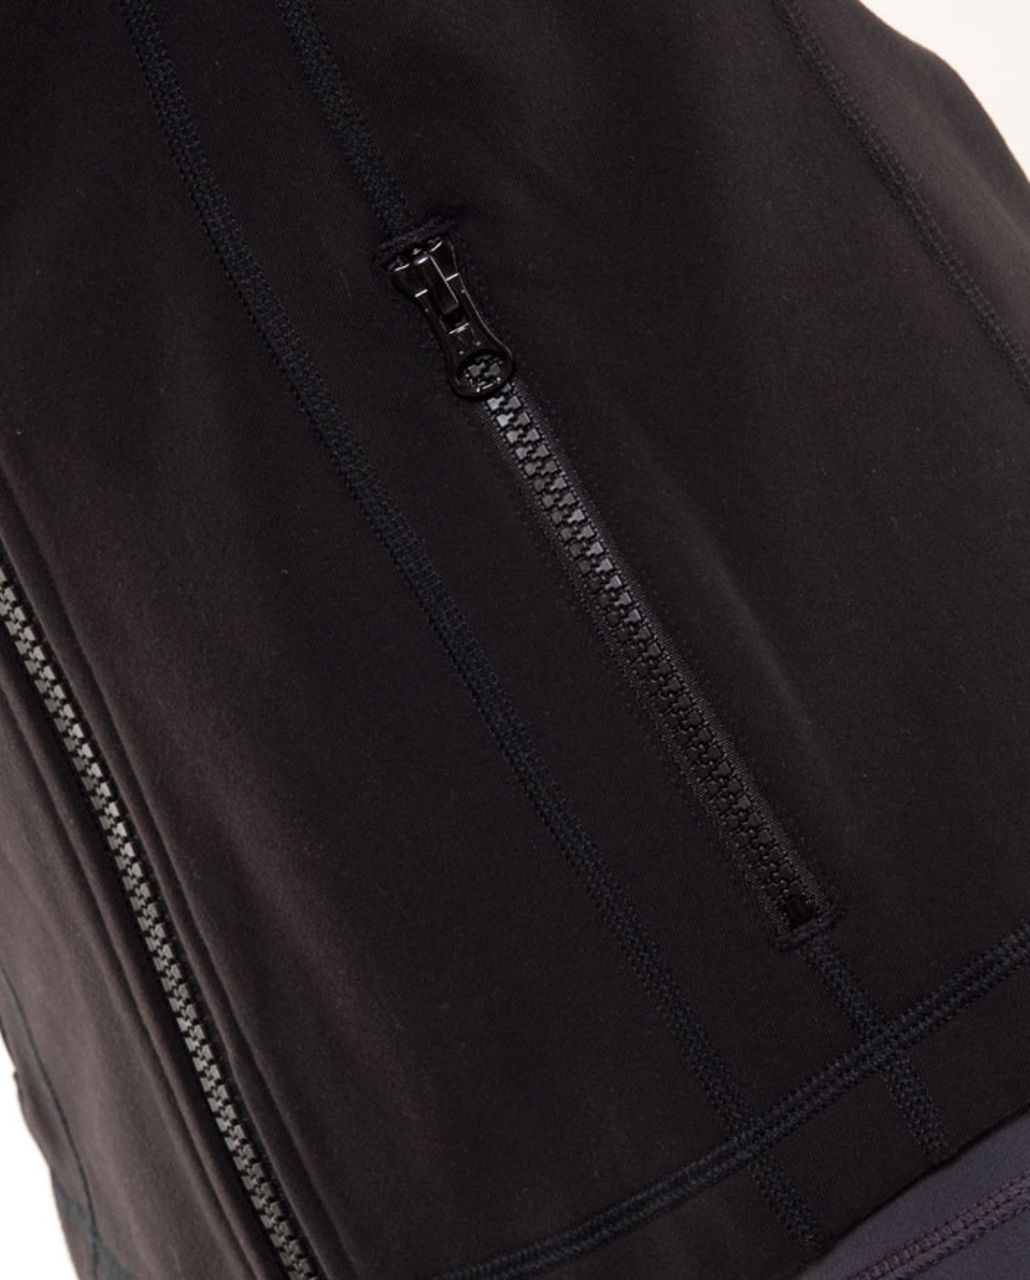 Lululemon Define Jacket *Brushed - Black (First Release)